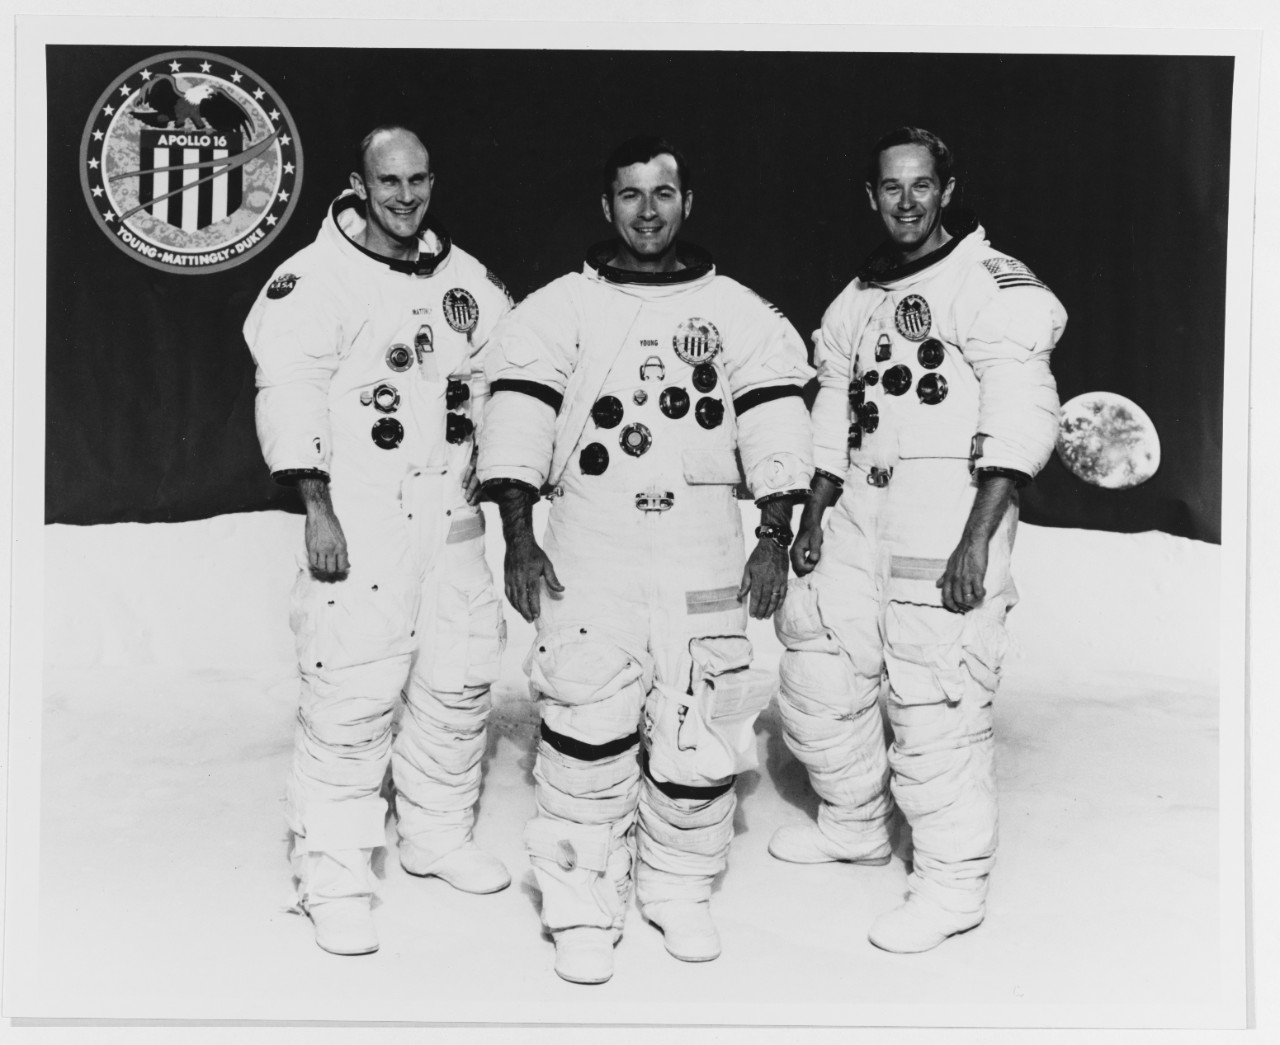 Apollo Sixteen Crew